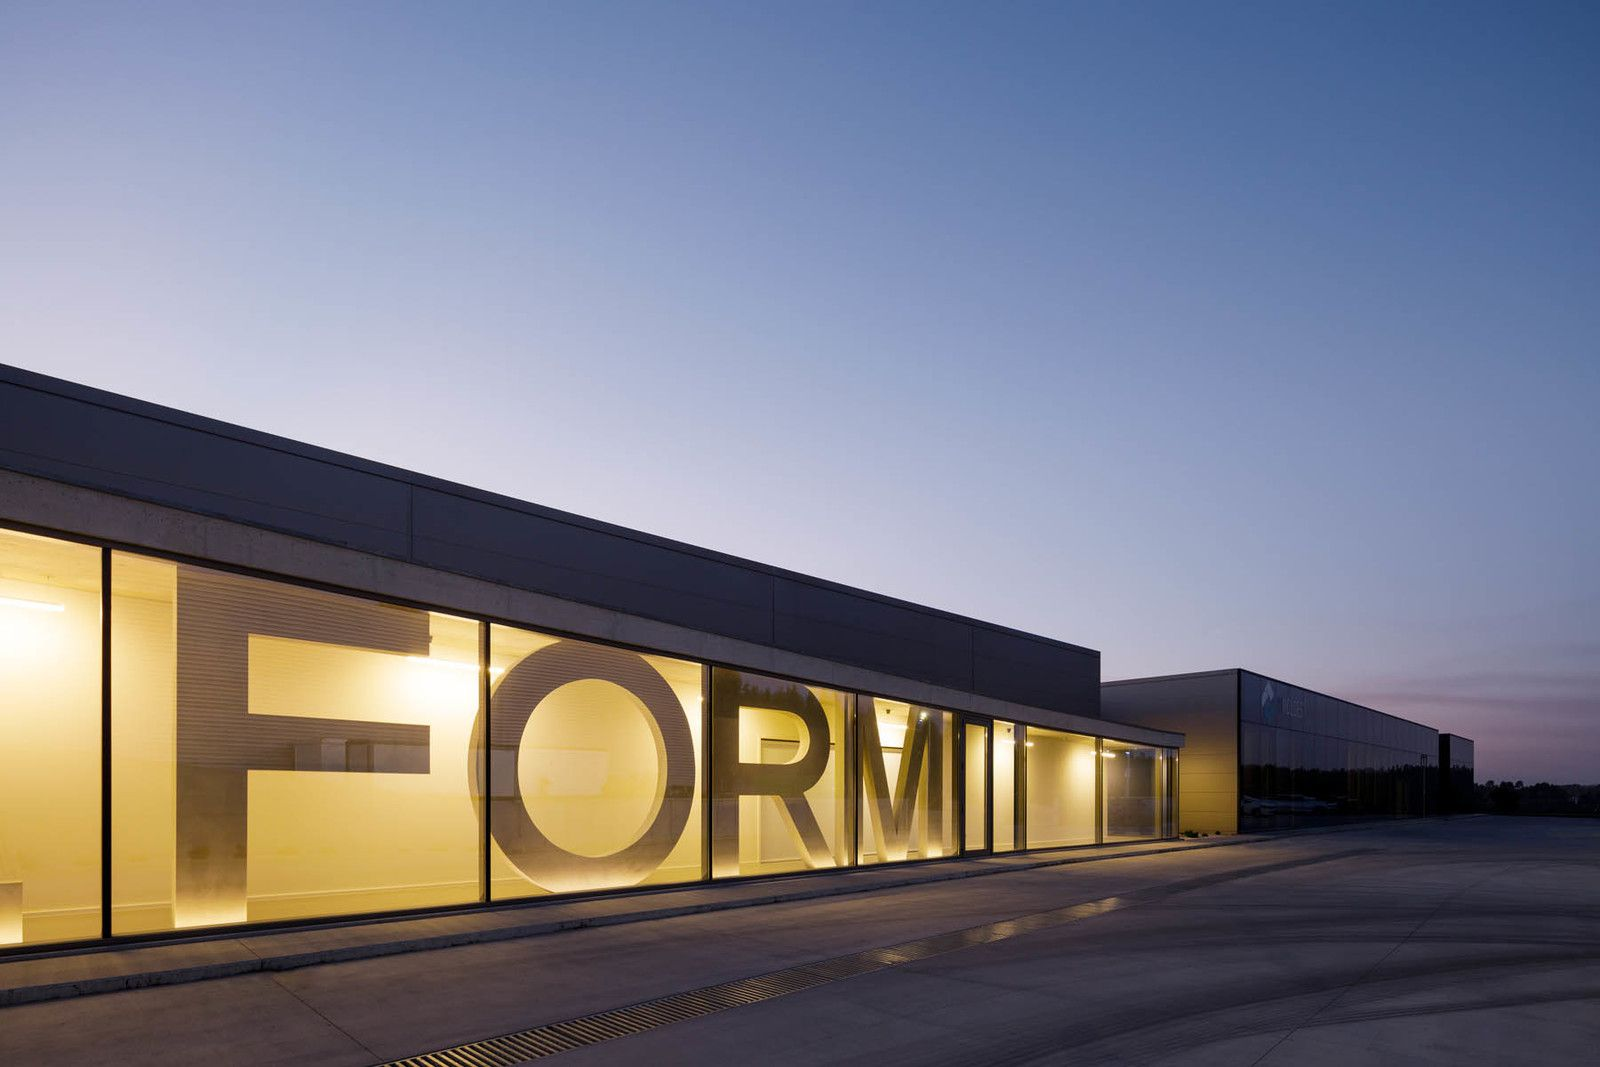 STEELFORM FACTORY EXTENSION IN OLIVEIRA DE AZEMEIS, PORTUGAL  BY LOPES DA COSTA STUDIO